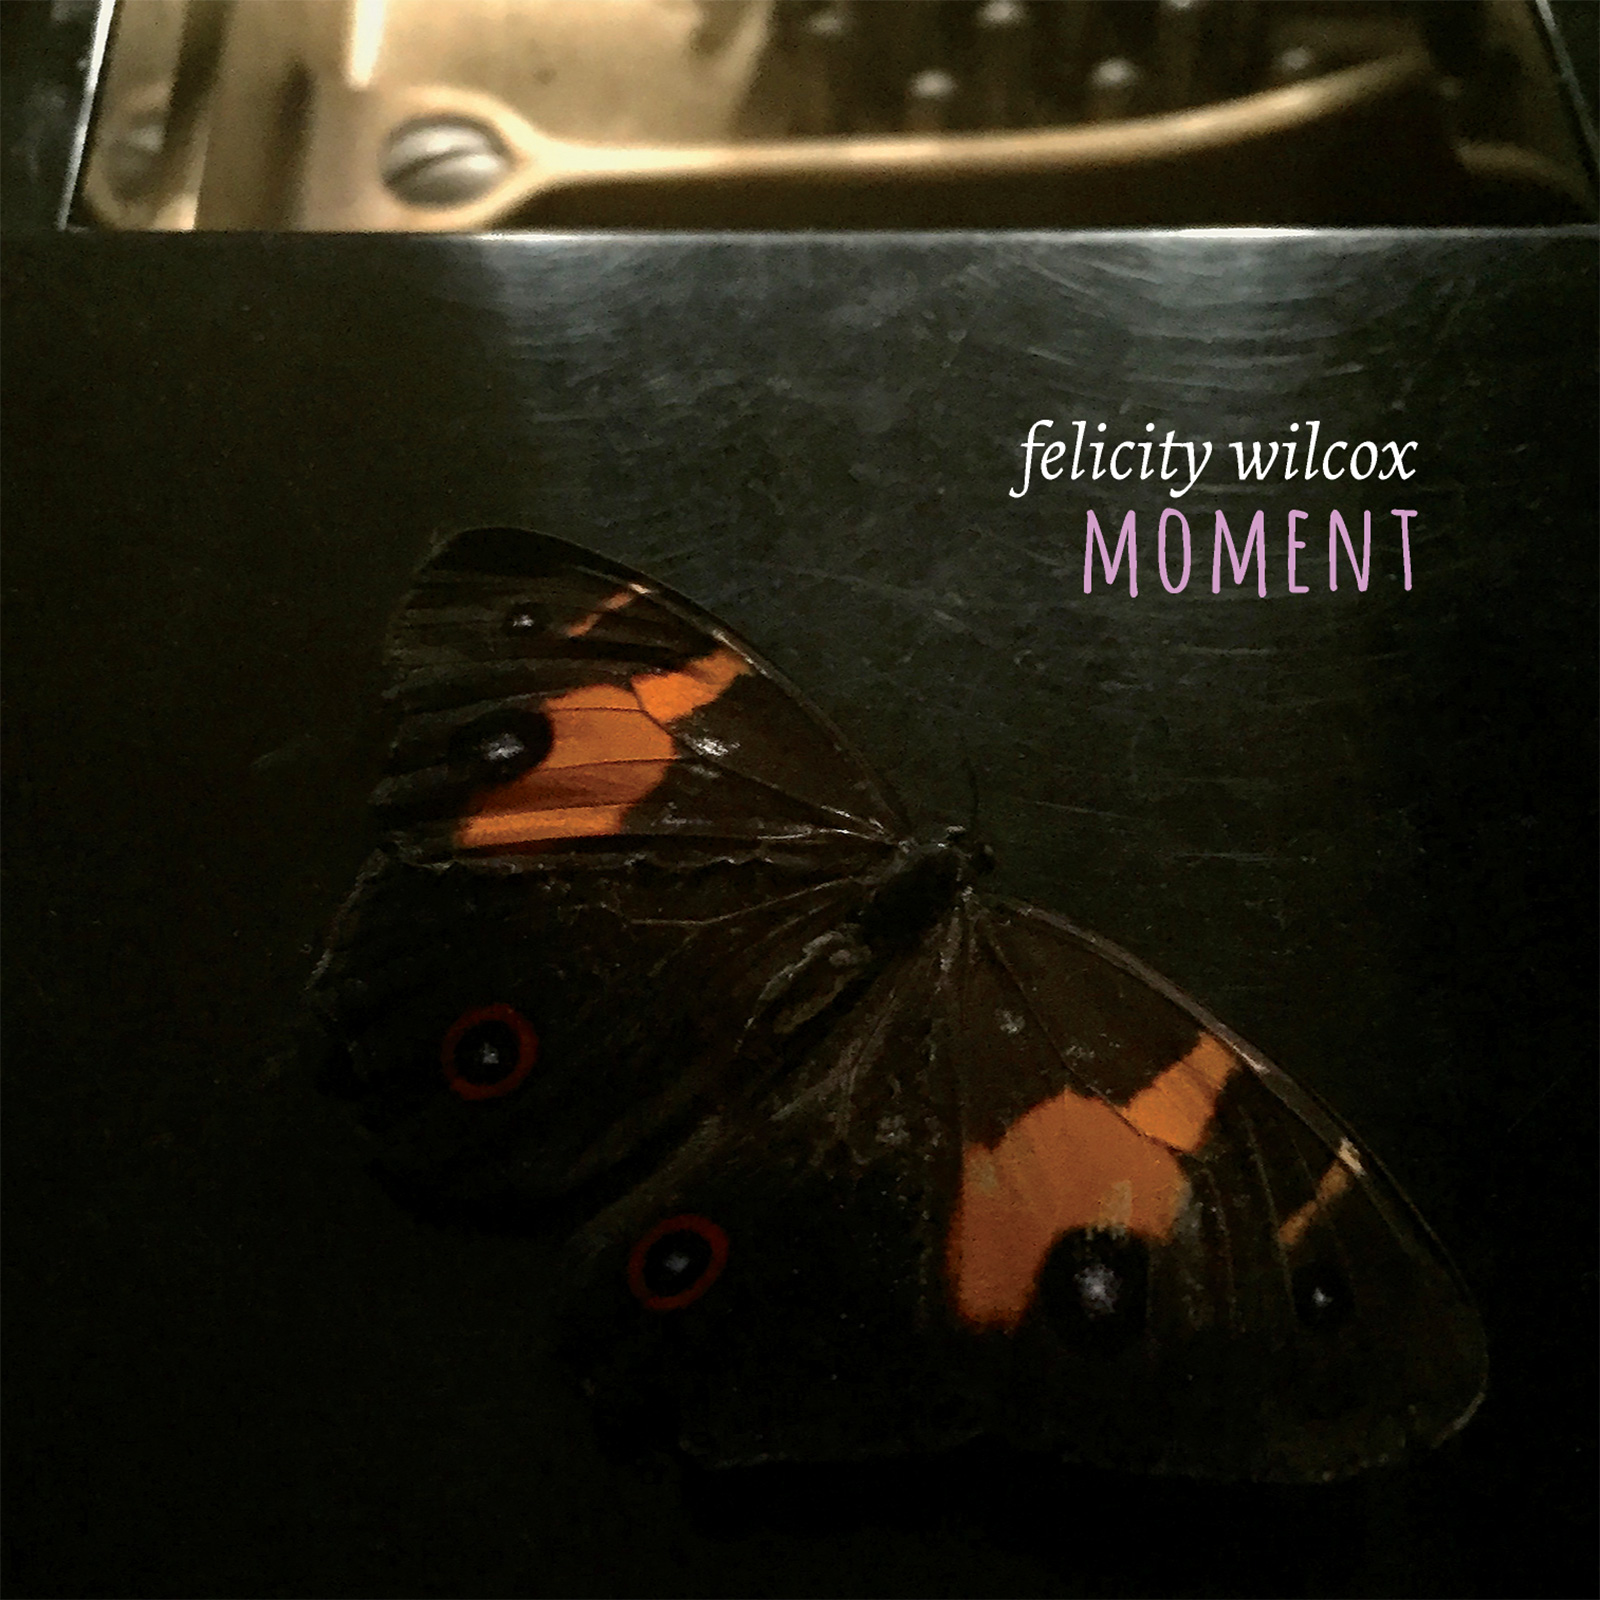 Felicity_Moment-CD-cover-square_1600px.jpg